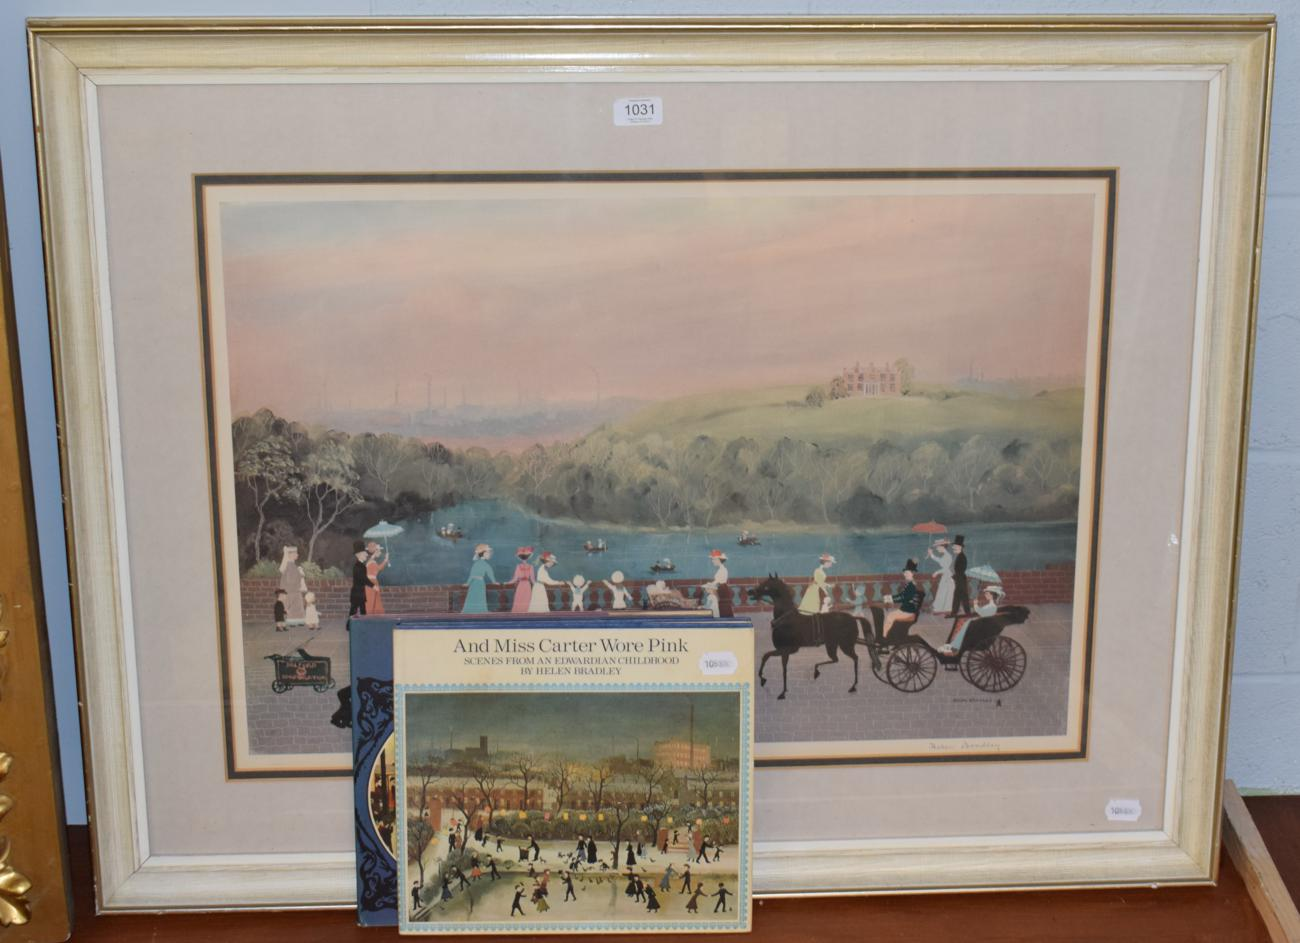 Lot 1031 - Dame Helen Bradley, A lady in pink, signed print; together with two books about the artist